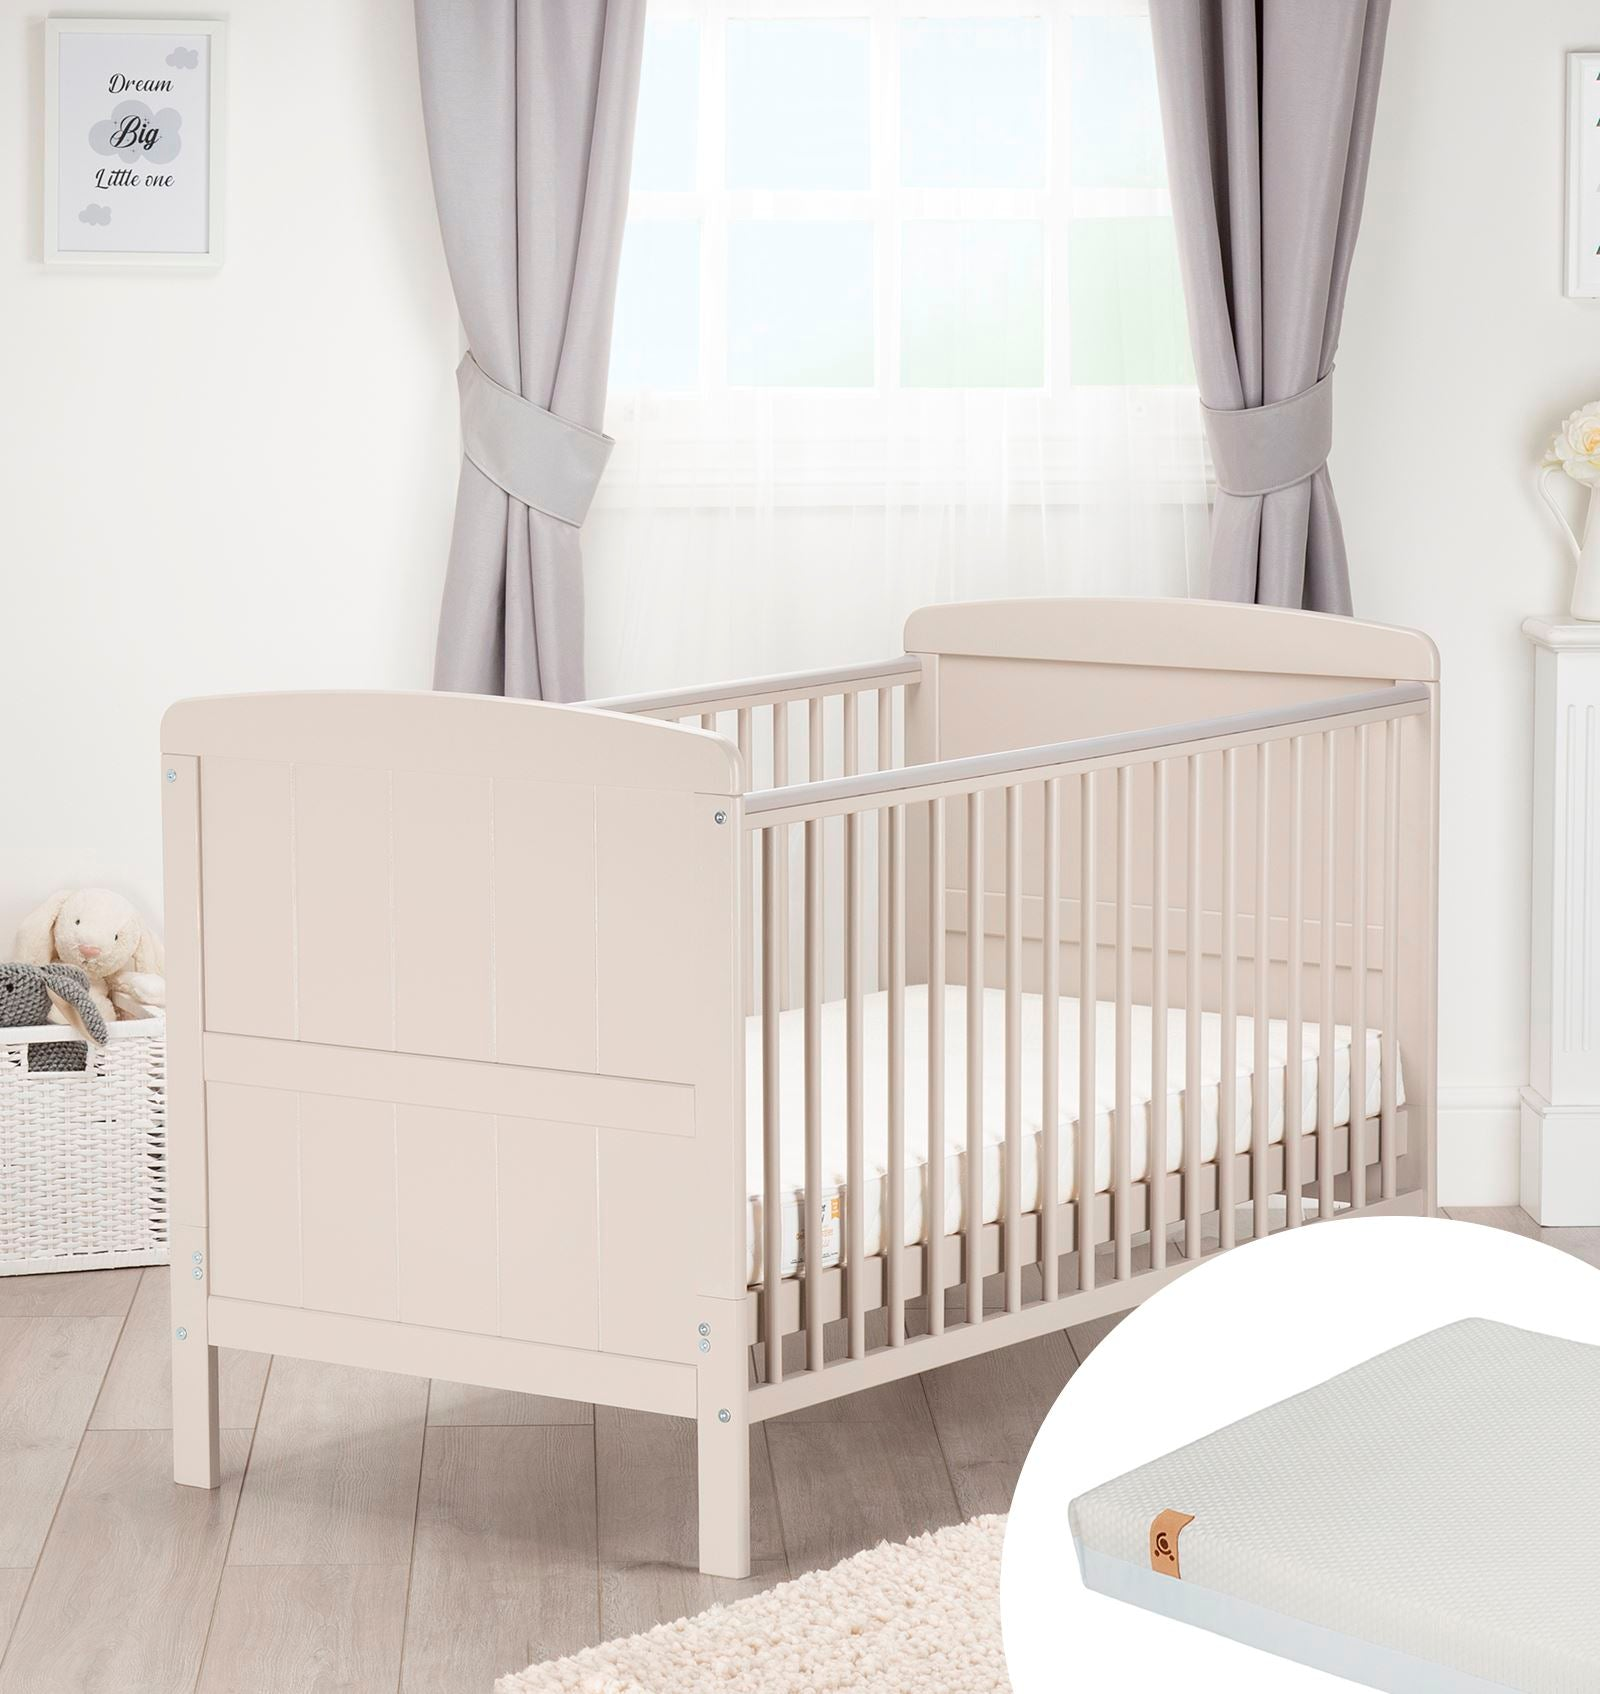 Juliet Cot Bed Dove Grey + Signature Hypo-Allergenic Bamboo Pocket Sprung Cot Bed Mattress Furniture CuddleCo